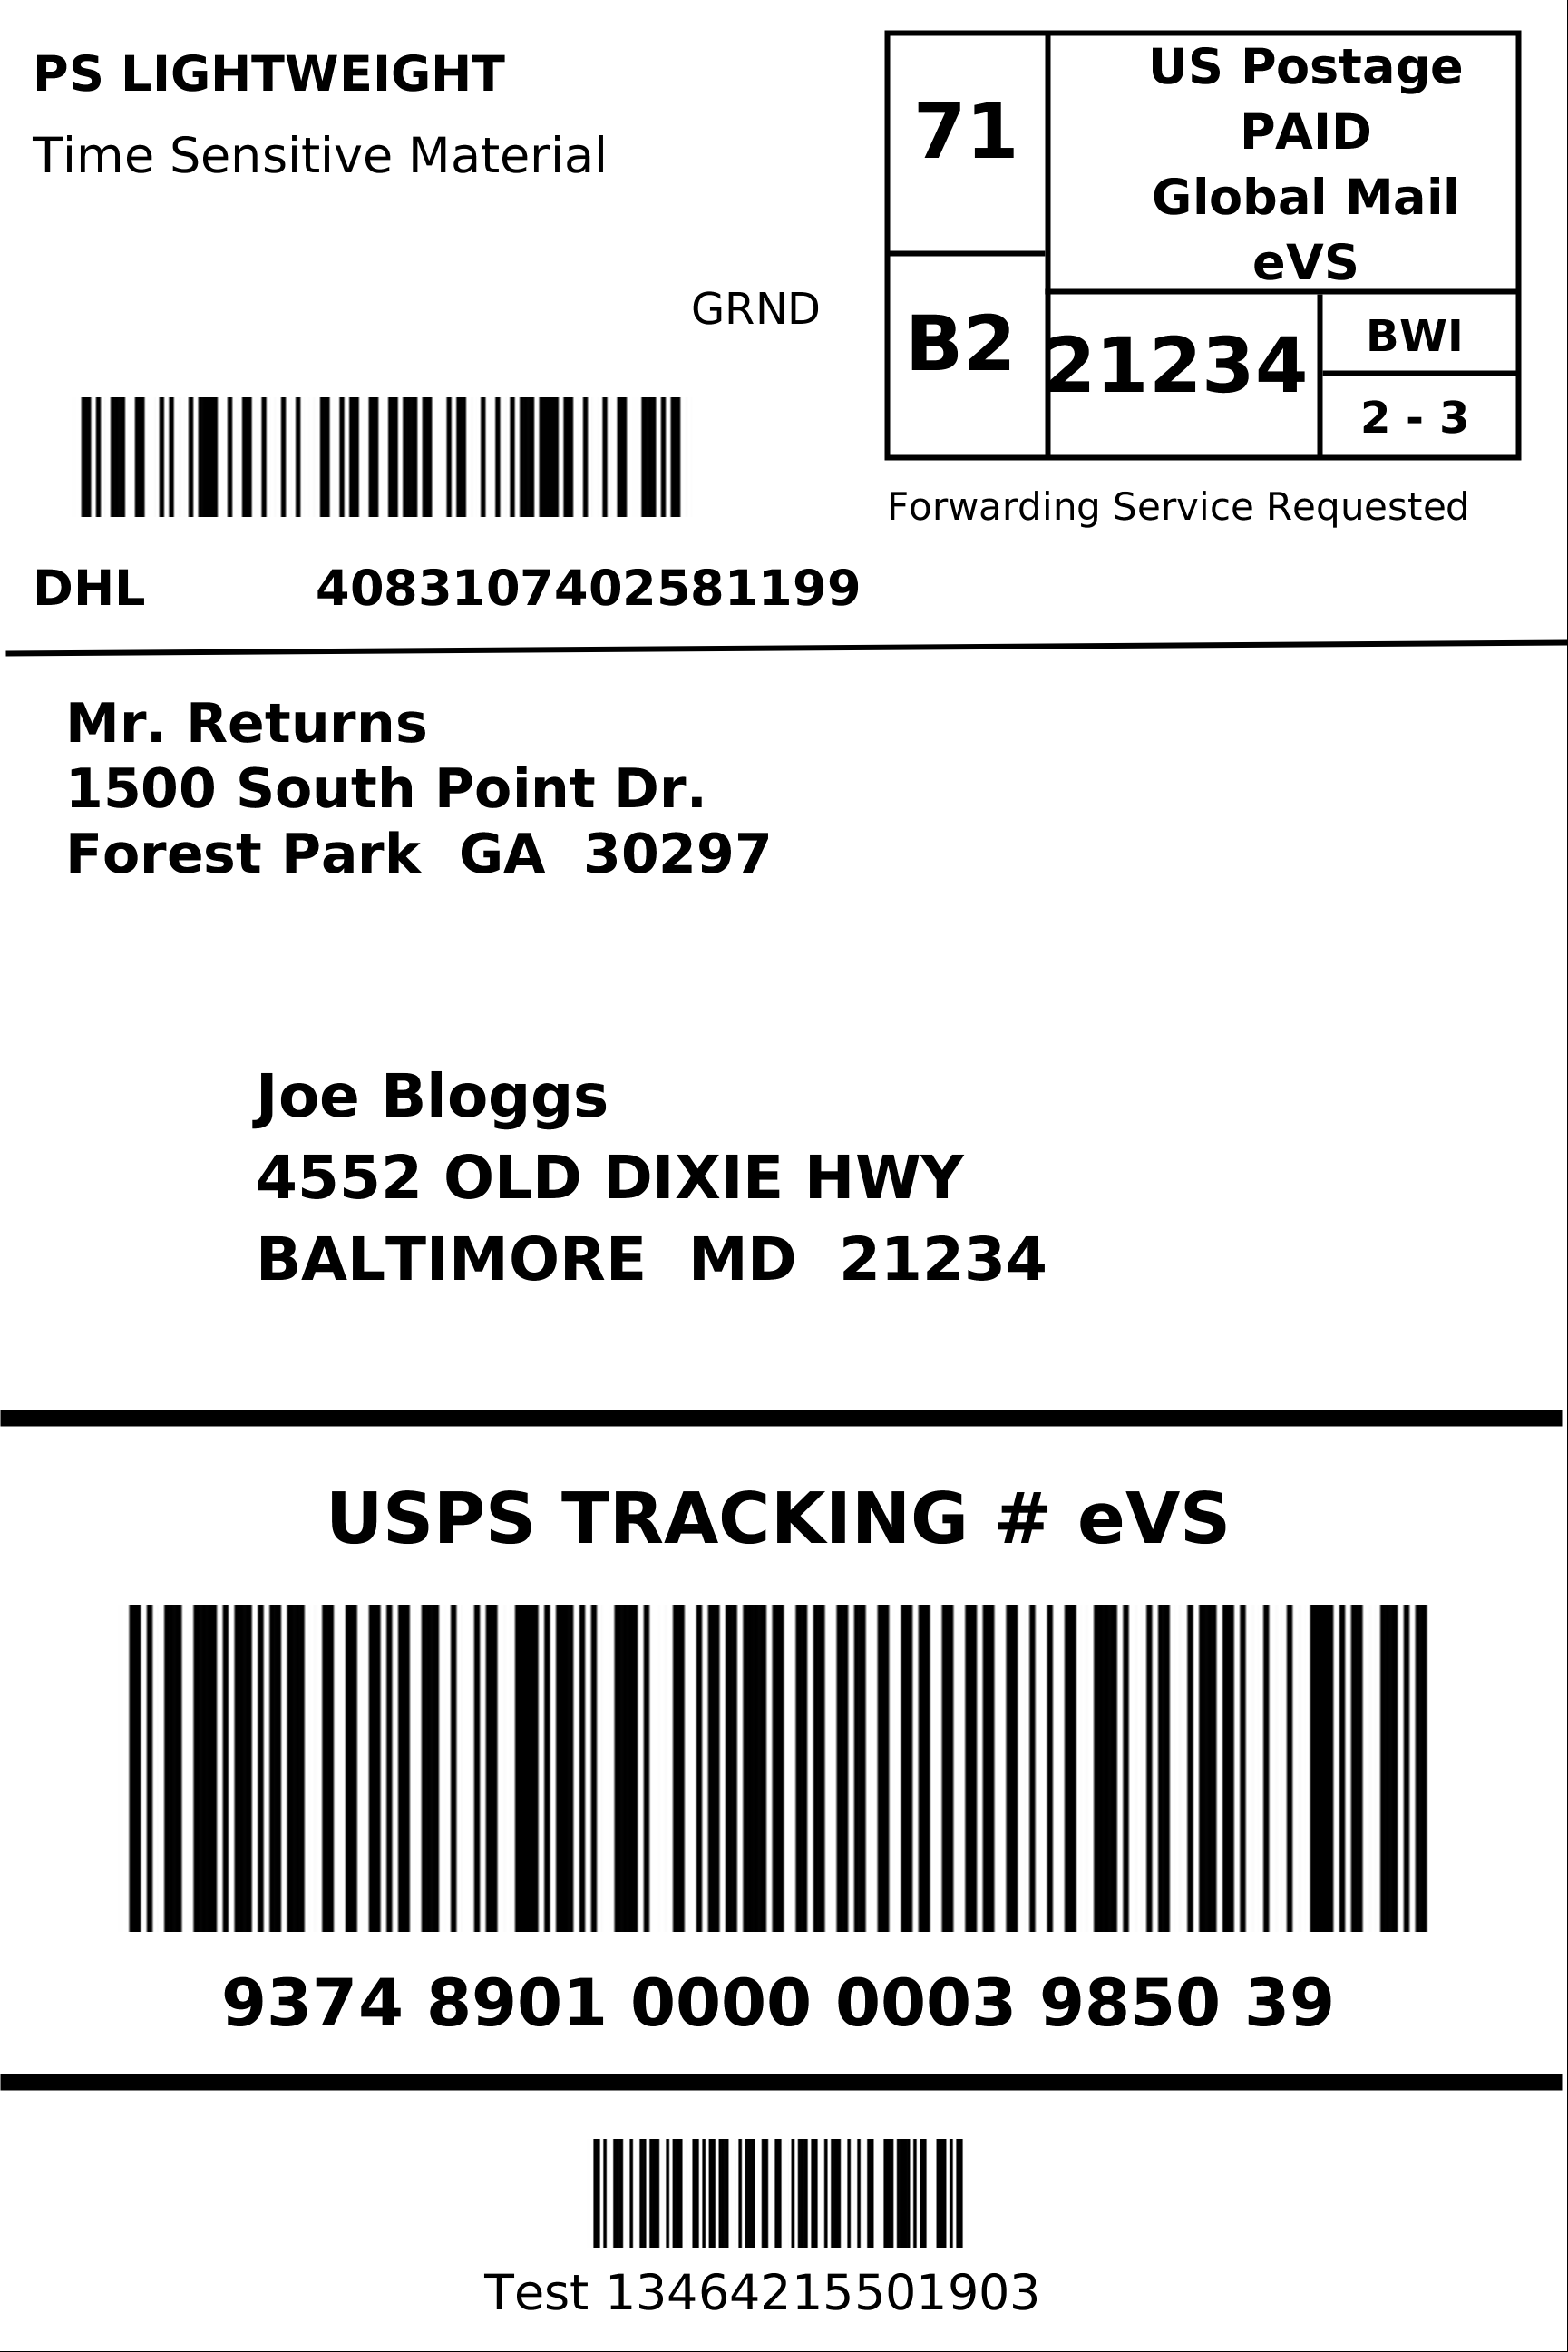 DHL eCommerce Generate a Shipping Label